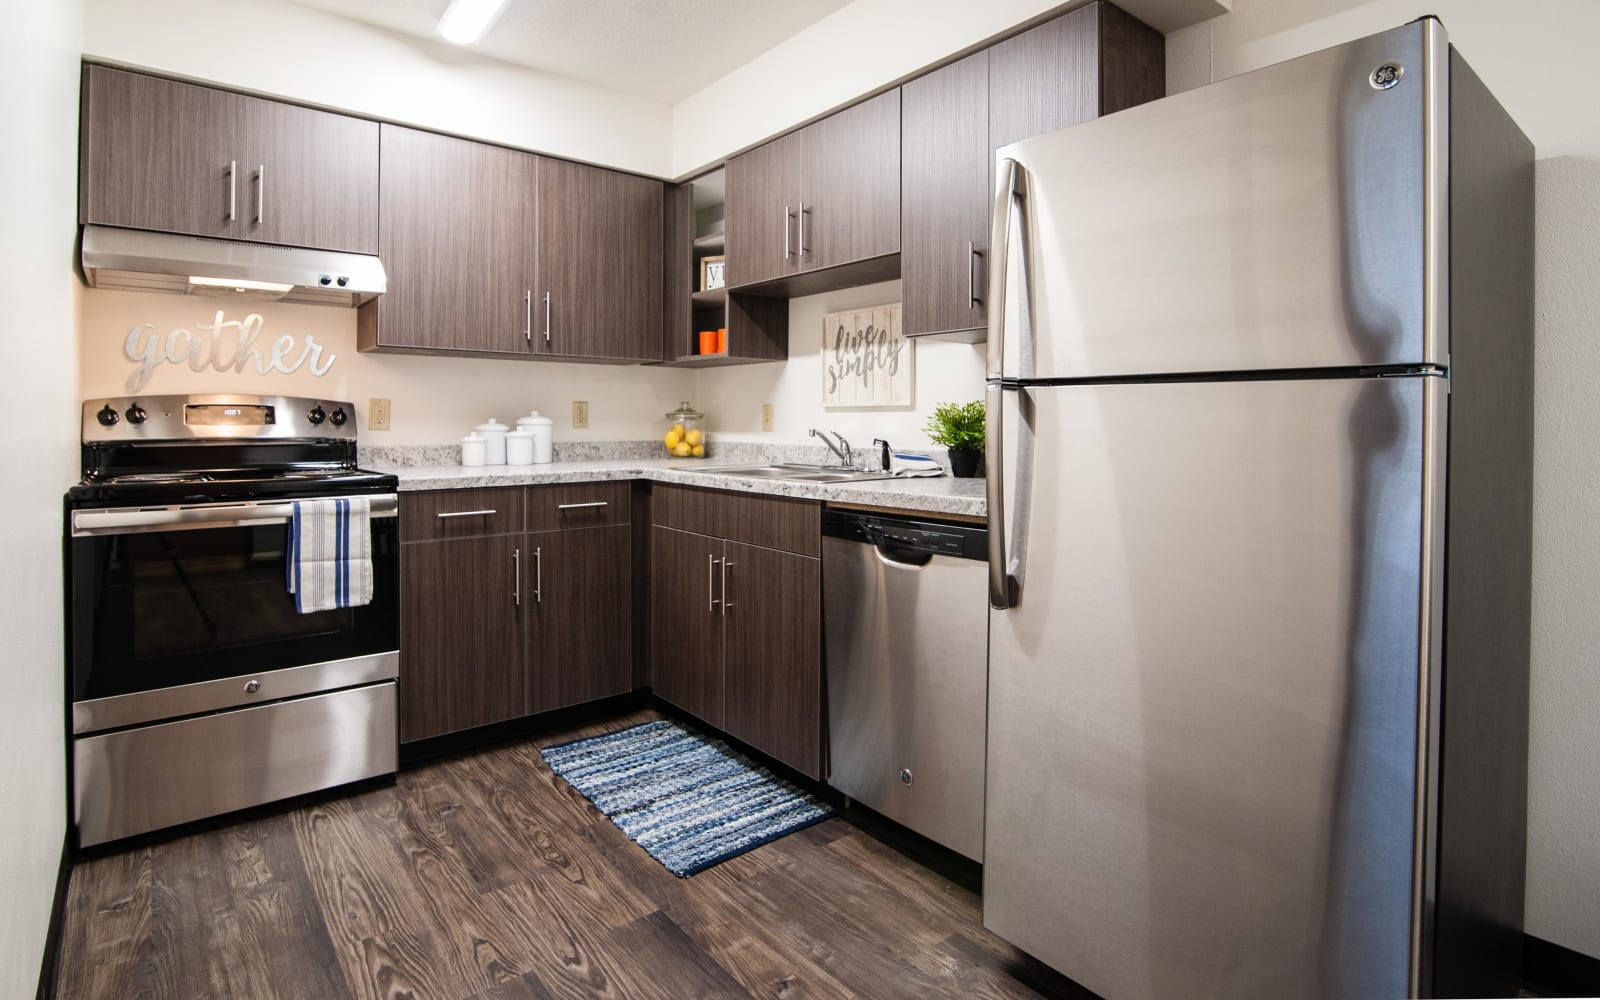 Kitchens at South Meadow in Ames, Iowa.